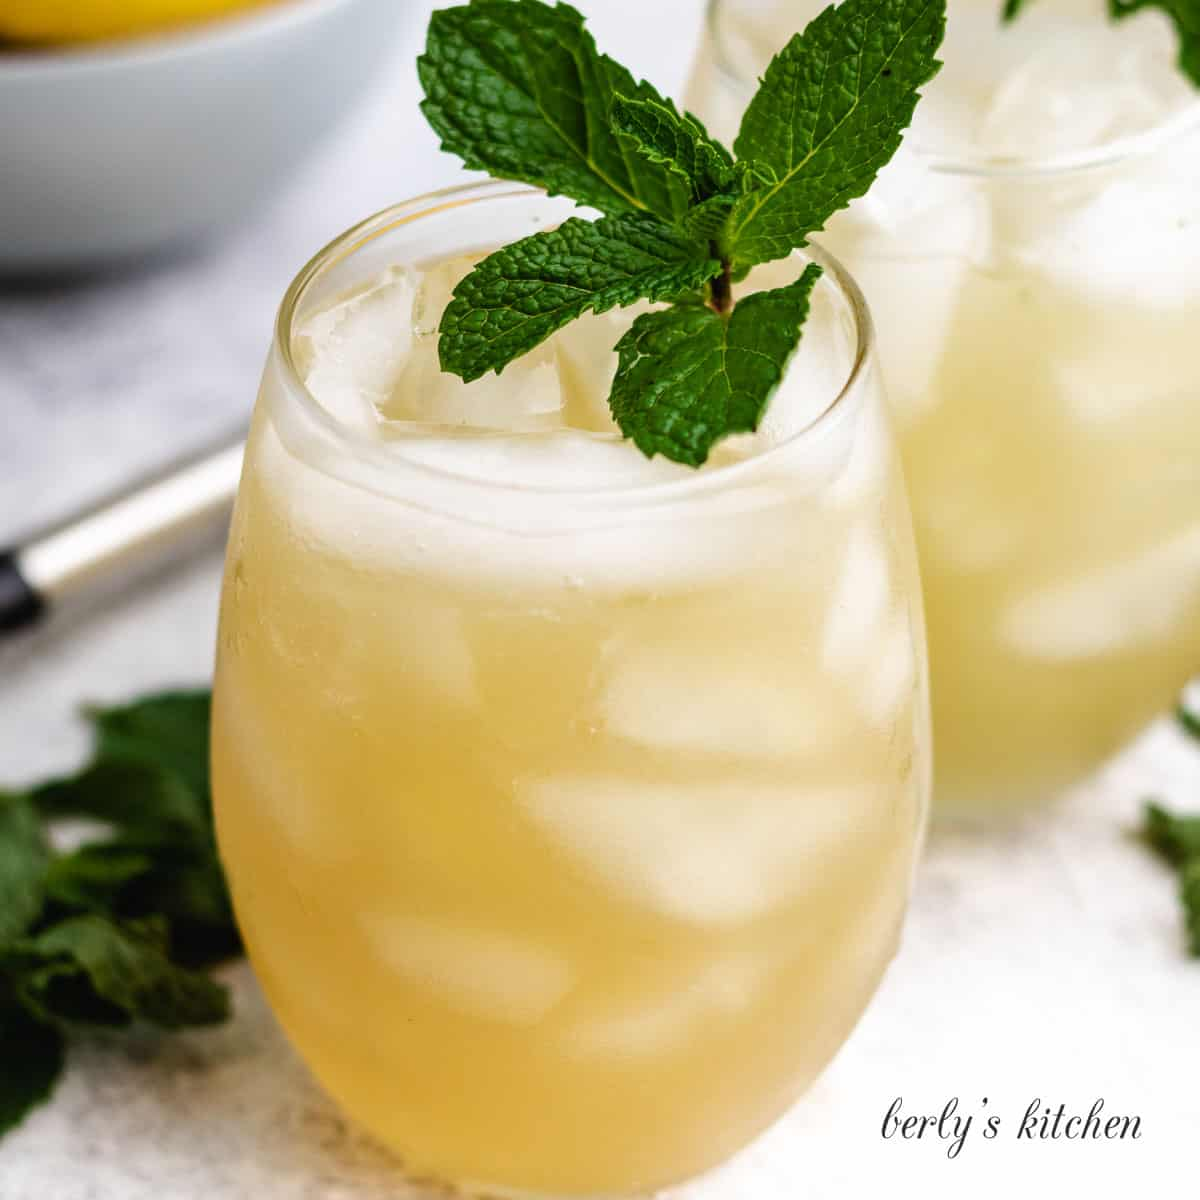 Two bourbon smash cocktails garnished with mint.